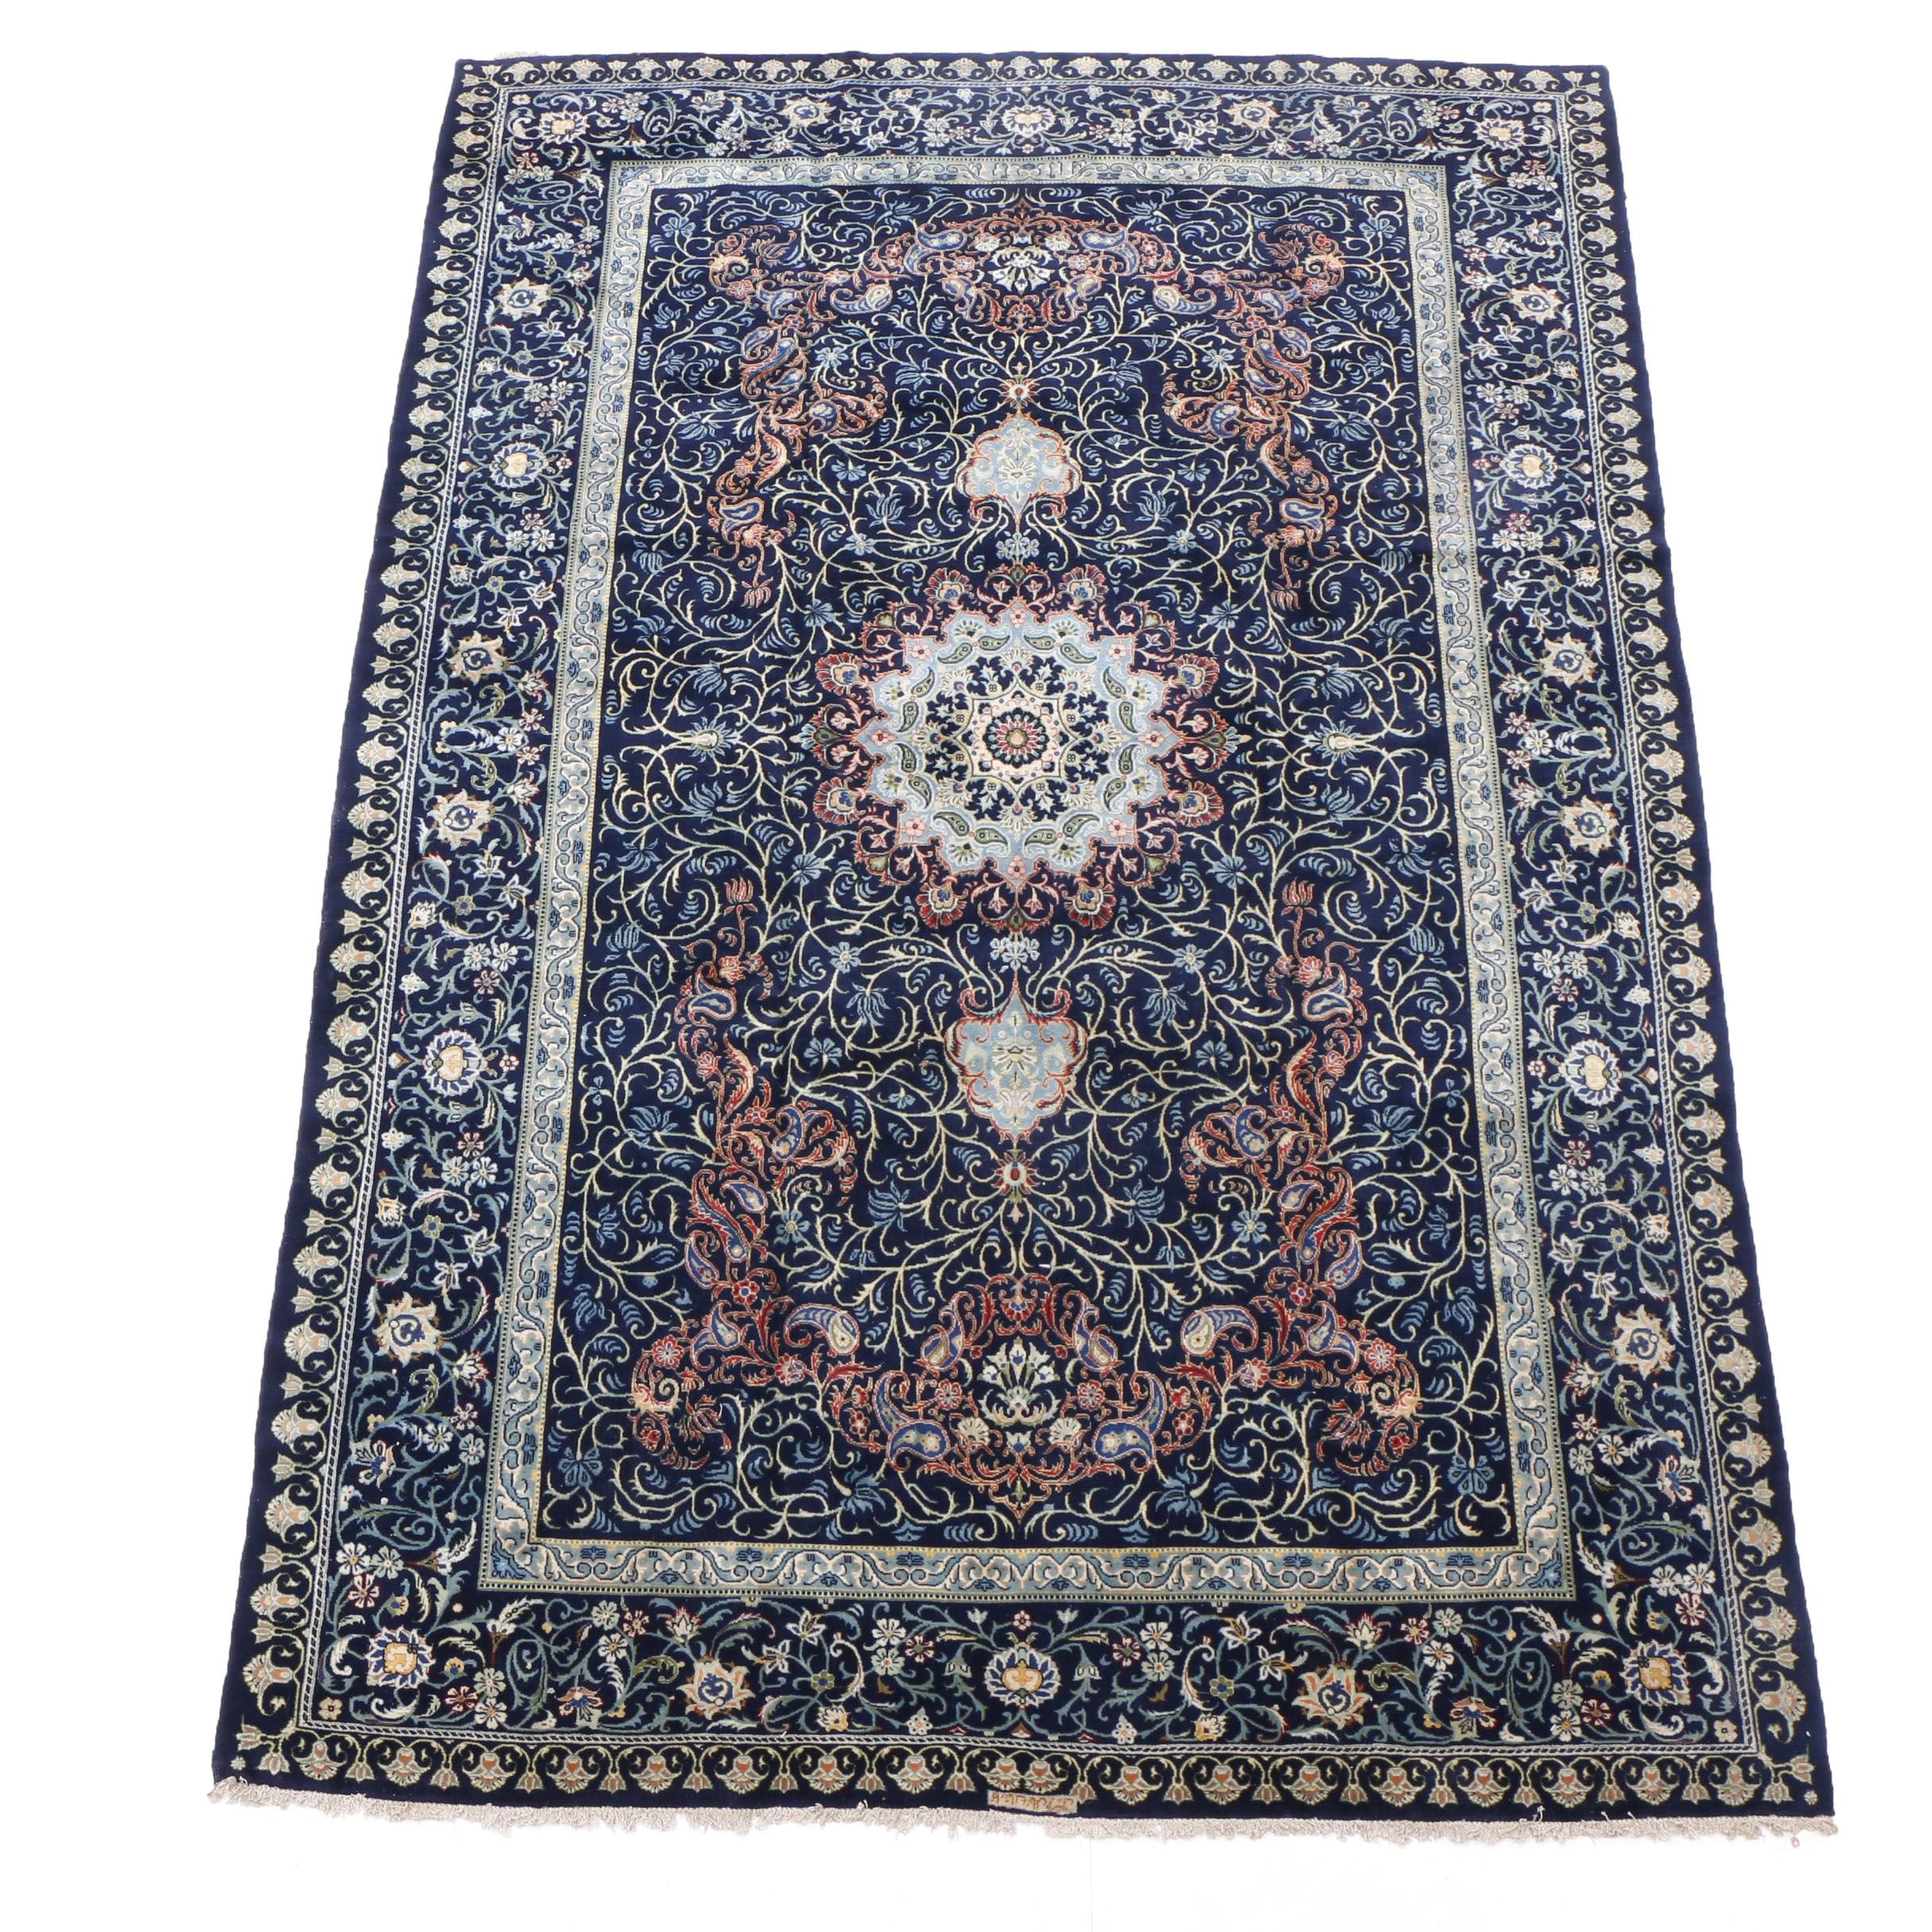 Finely Hand-Knotted Inscribed Persian Qom Wool Area Rug